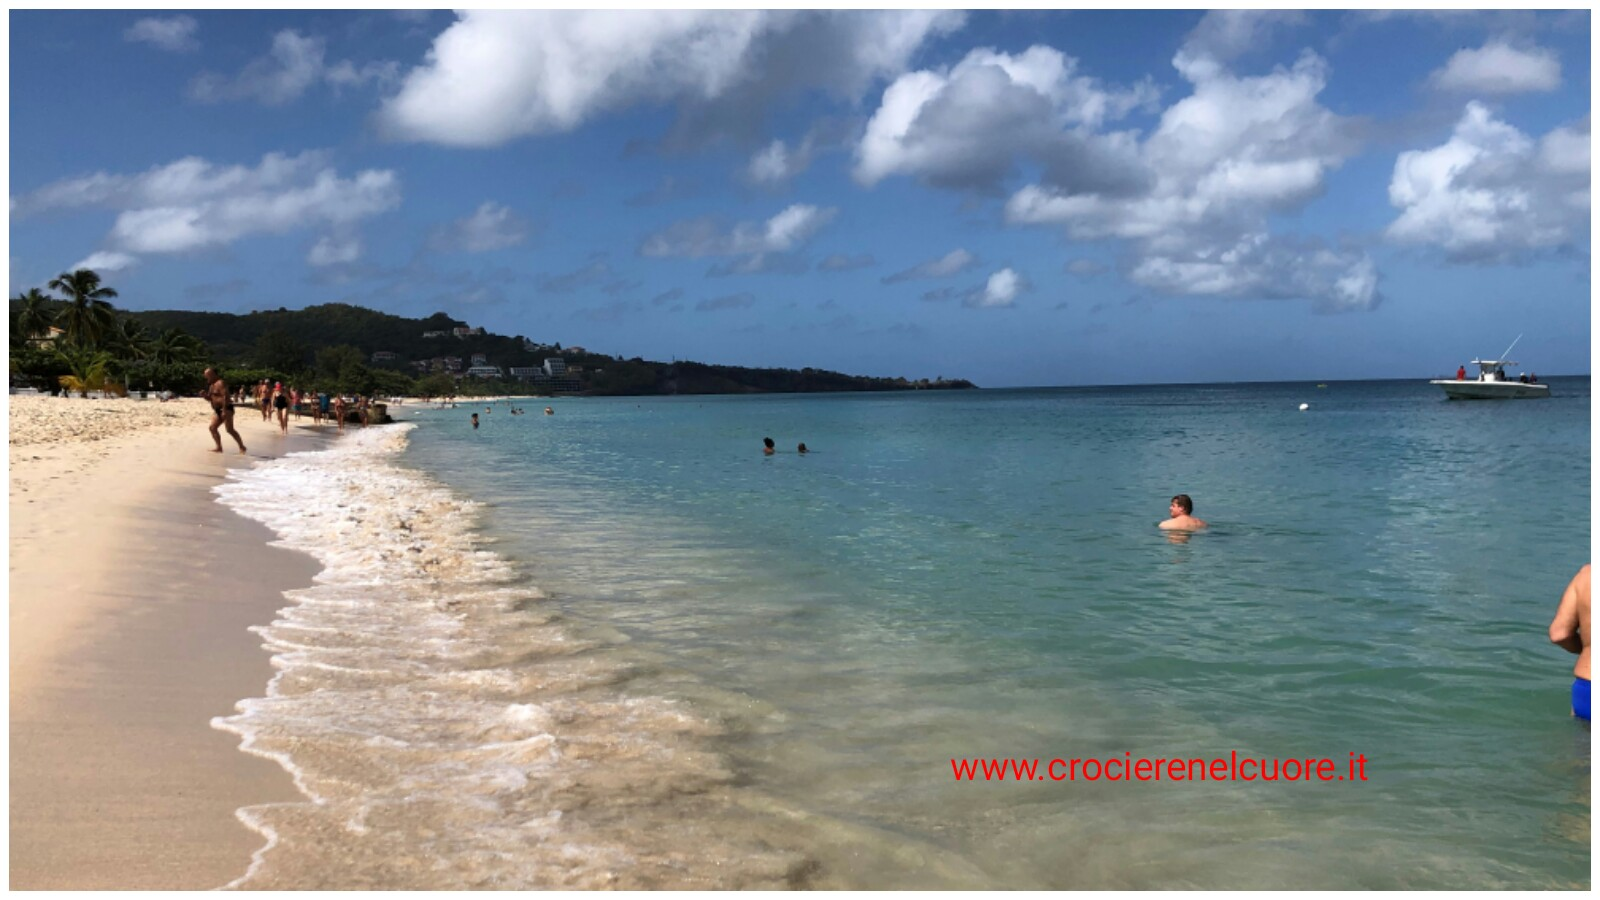 www.crocierenelcuore.it - Grenada Grand Anse